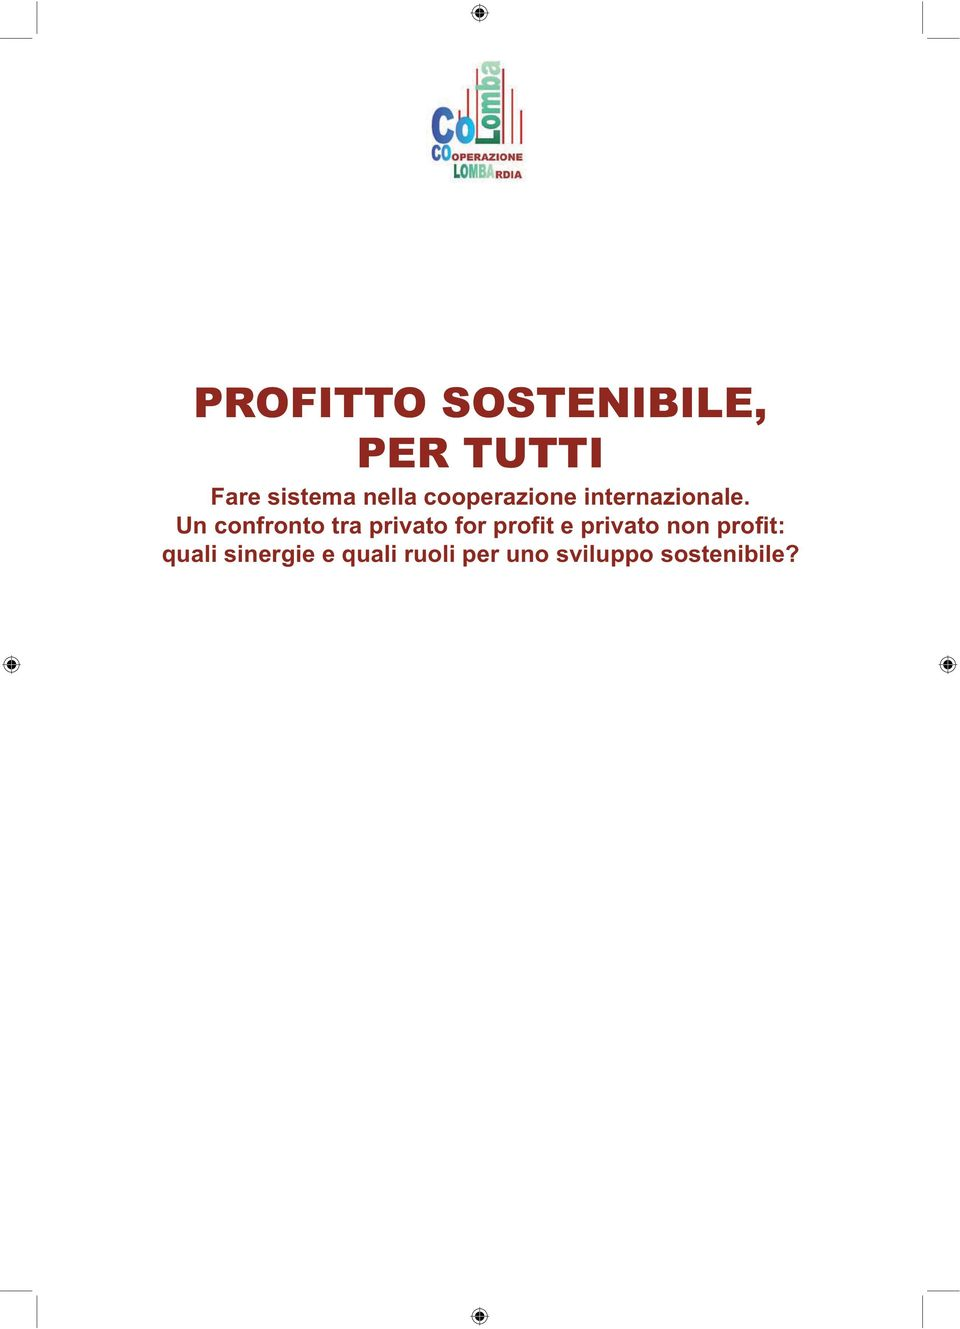 Un confronto tra privato for profit e privato